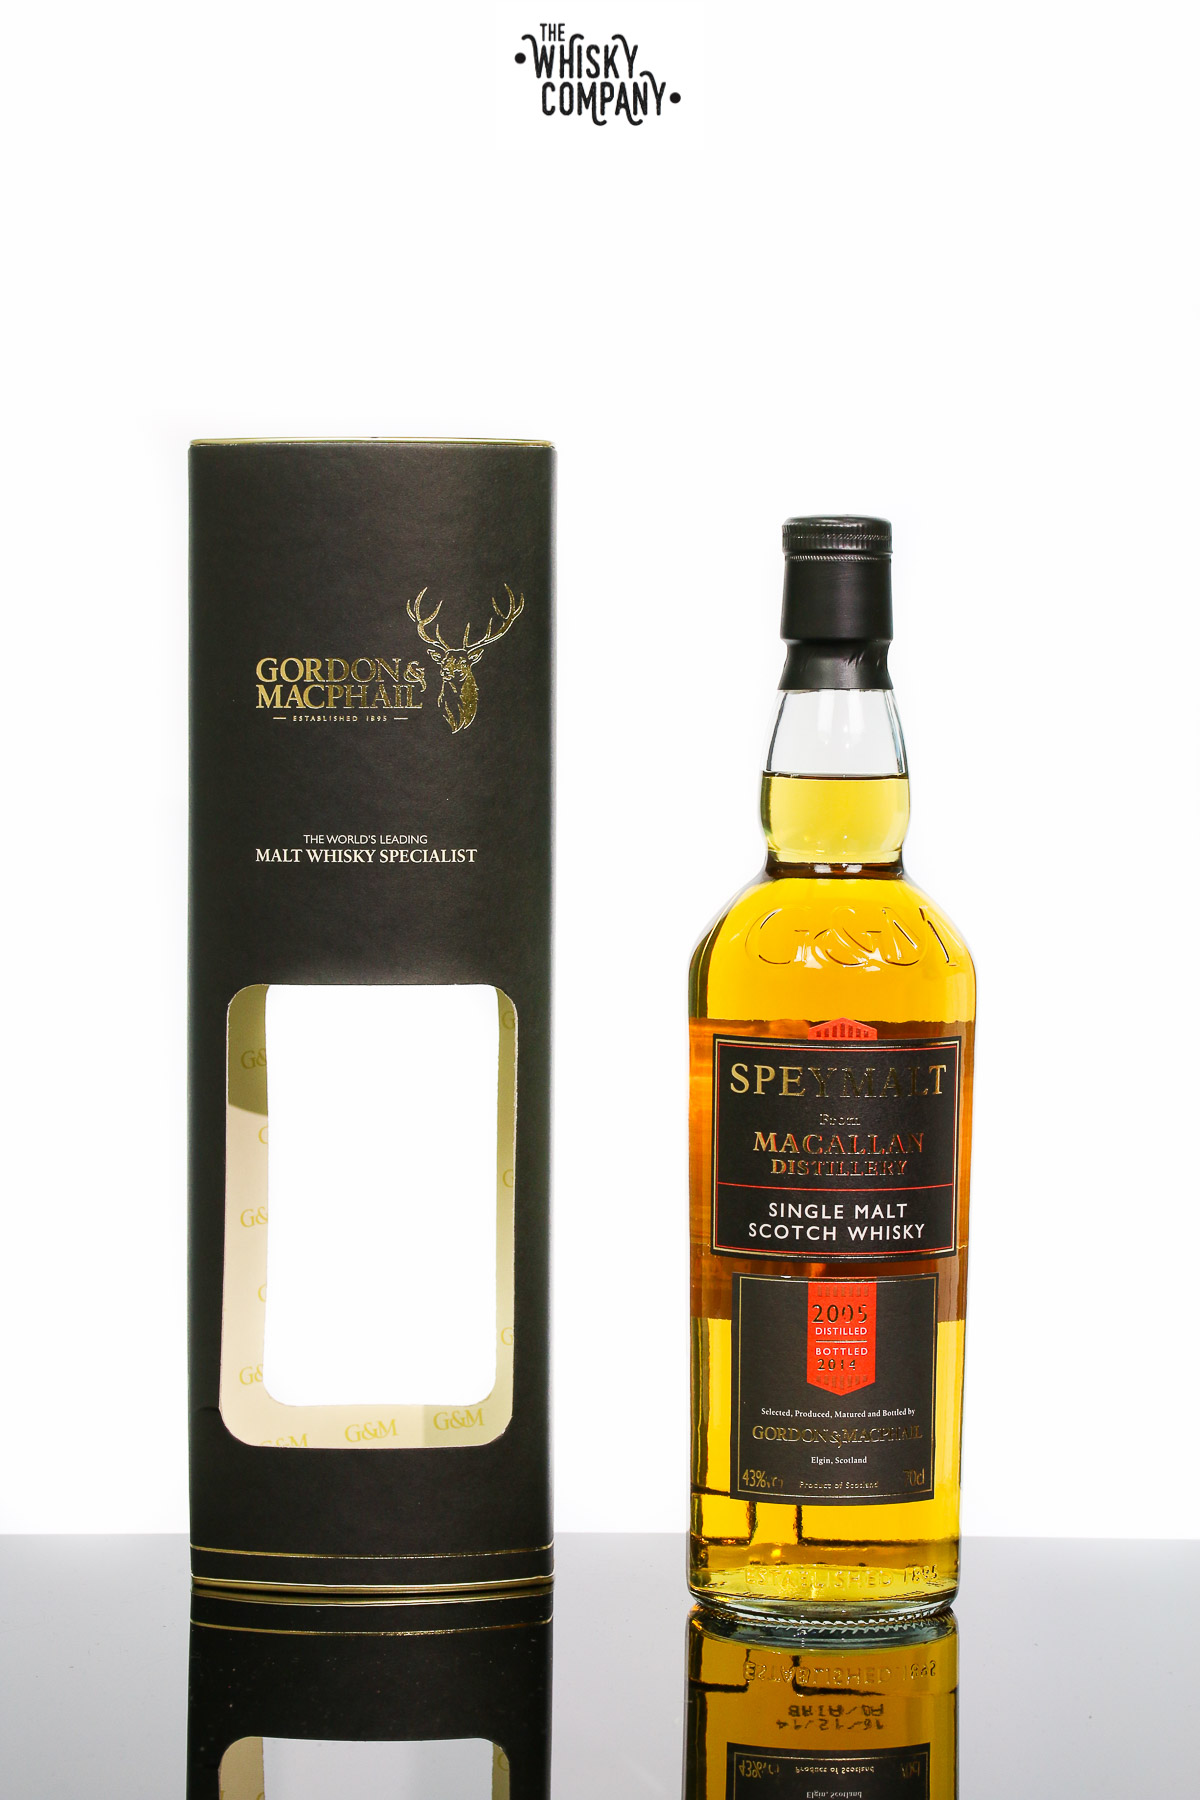 Gordon & MacPhail Macallan 2005 Speyside Single Malt Scotch Whisky